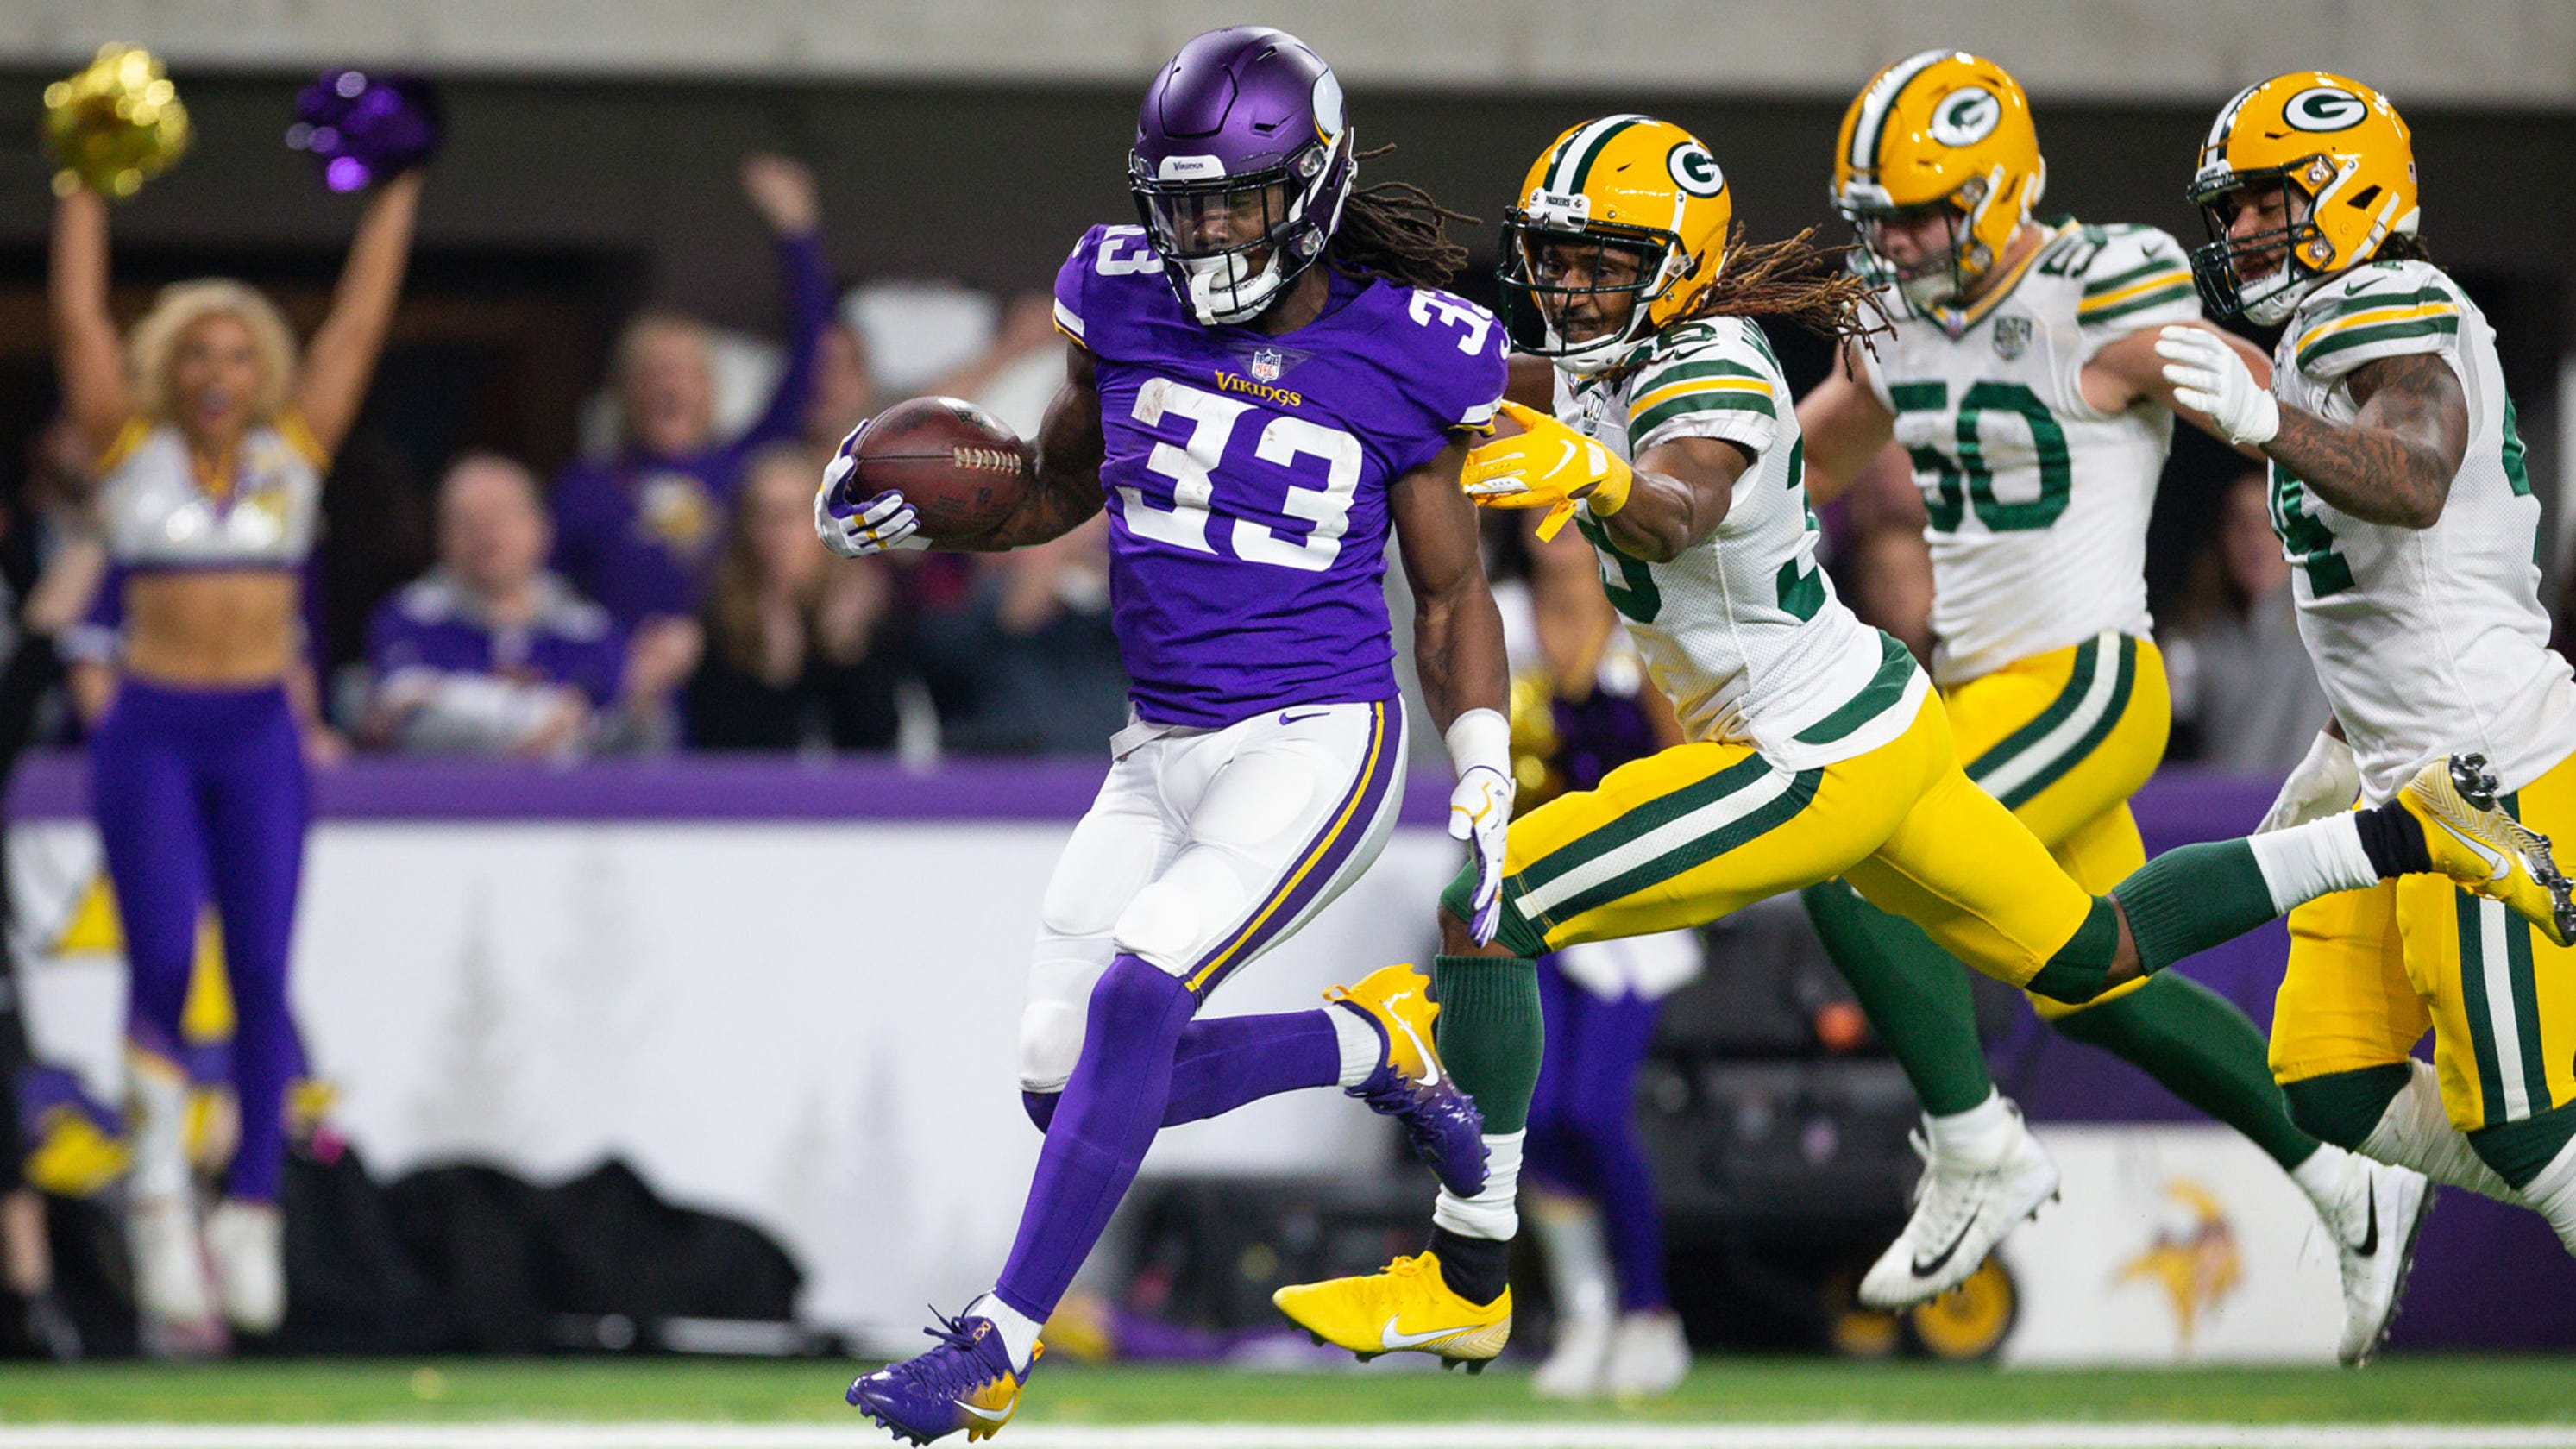 Green Bay Packers  season on life support after loss to Vikings c6a9ddf7a